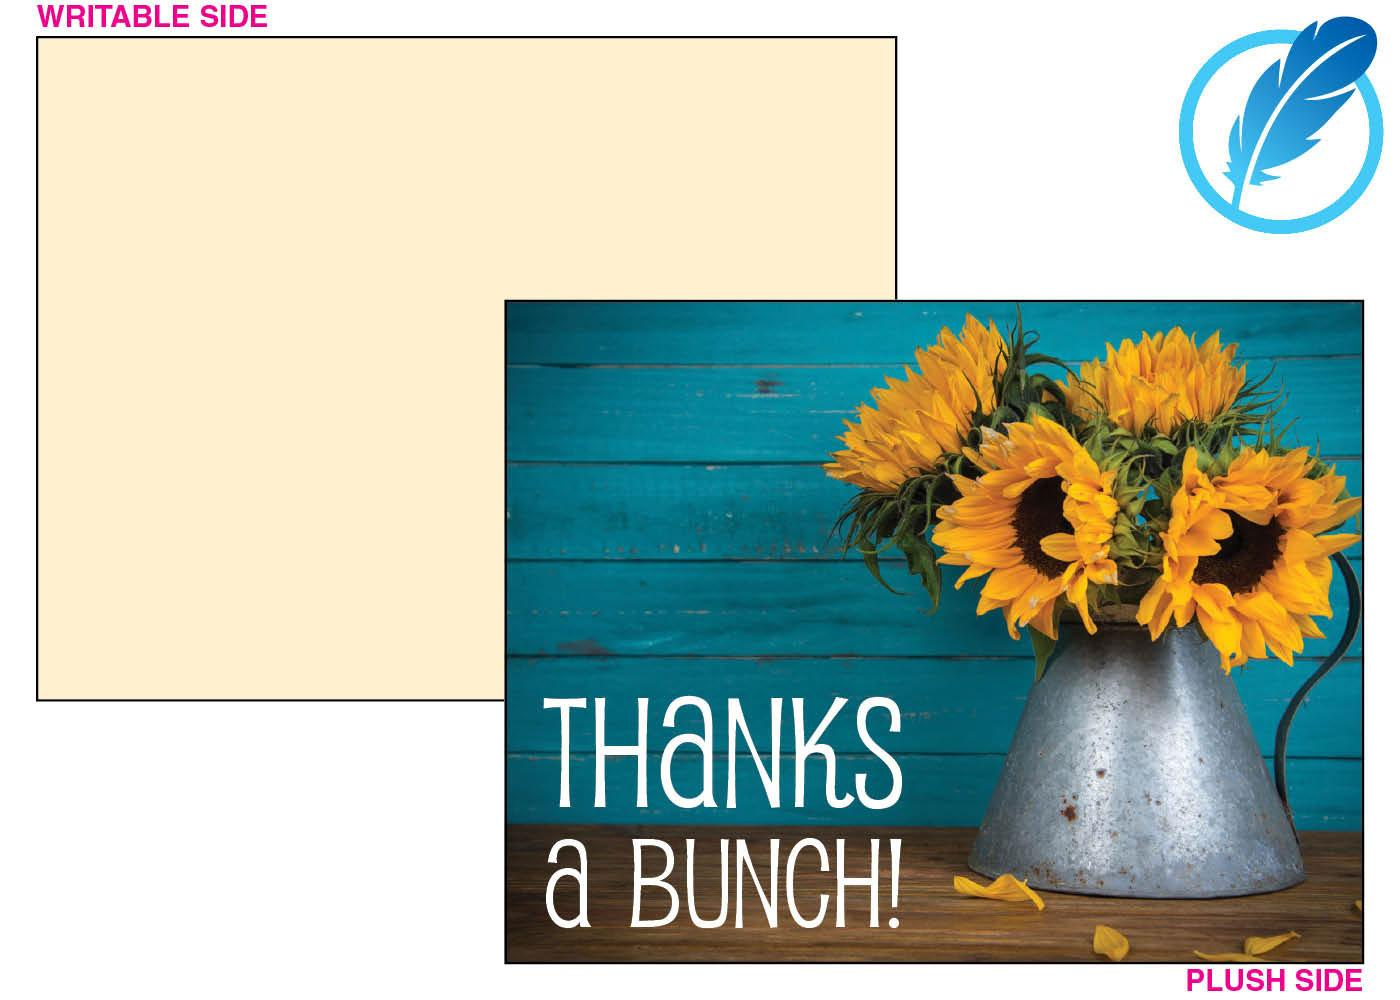 Sunflower with vase thank you card